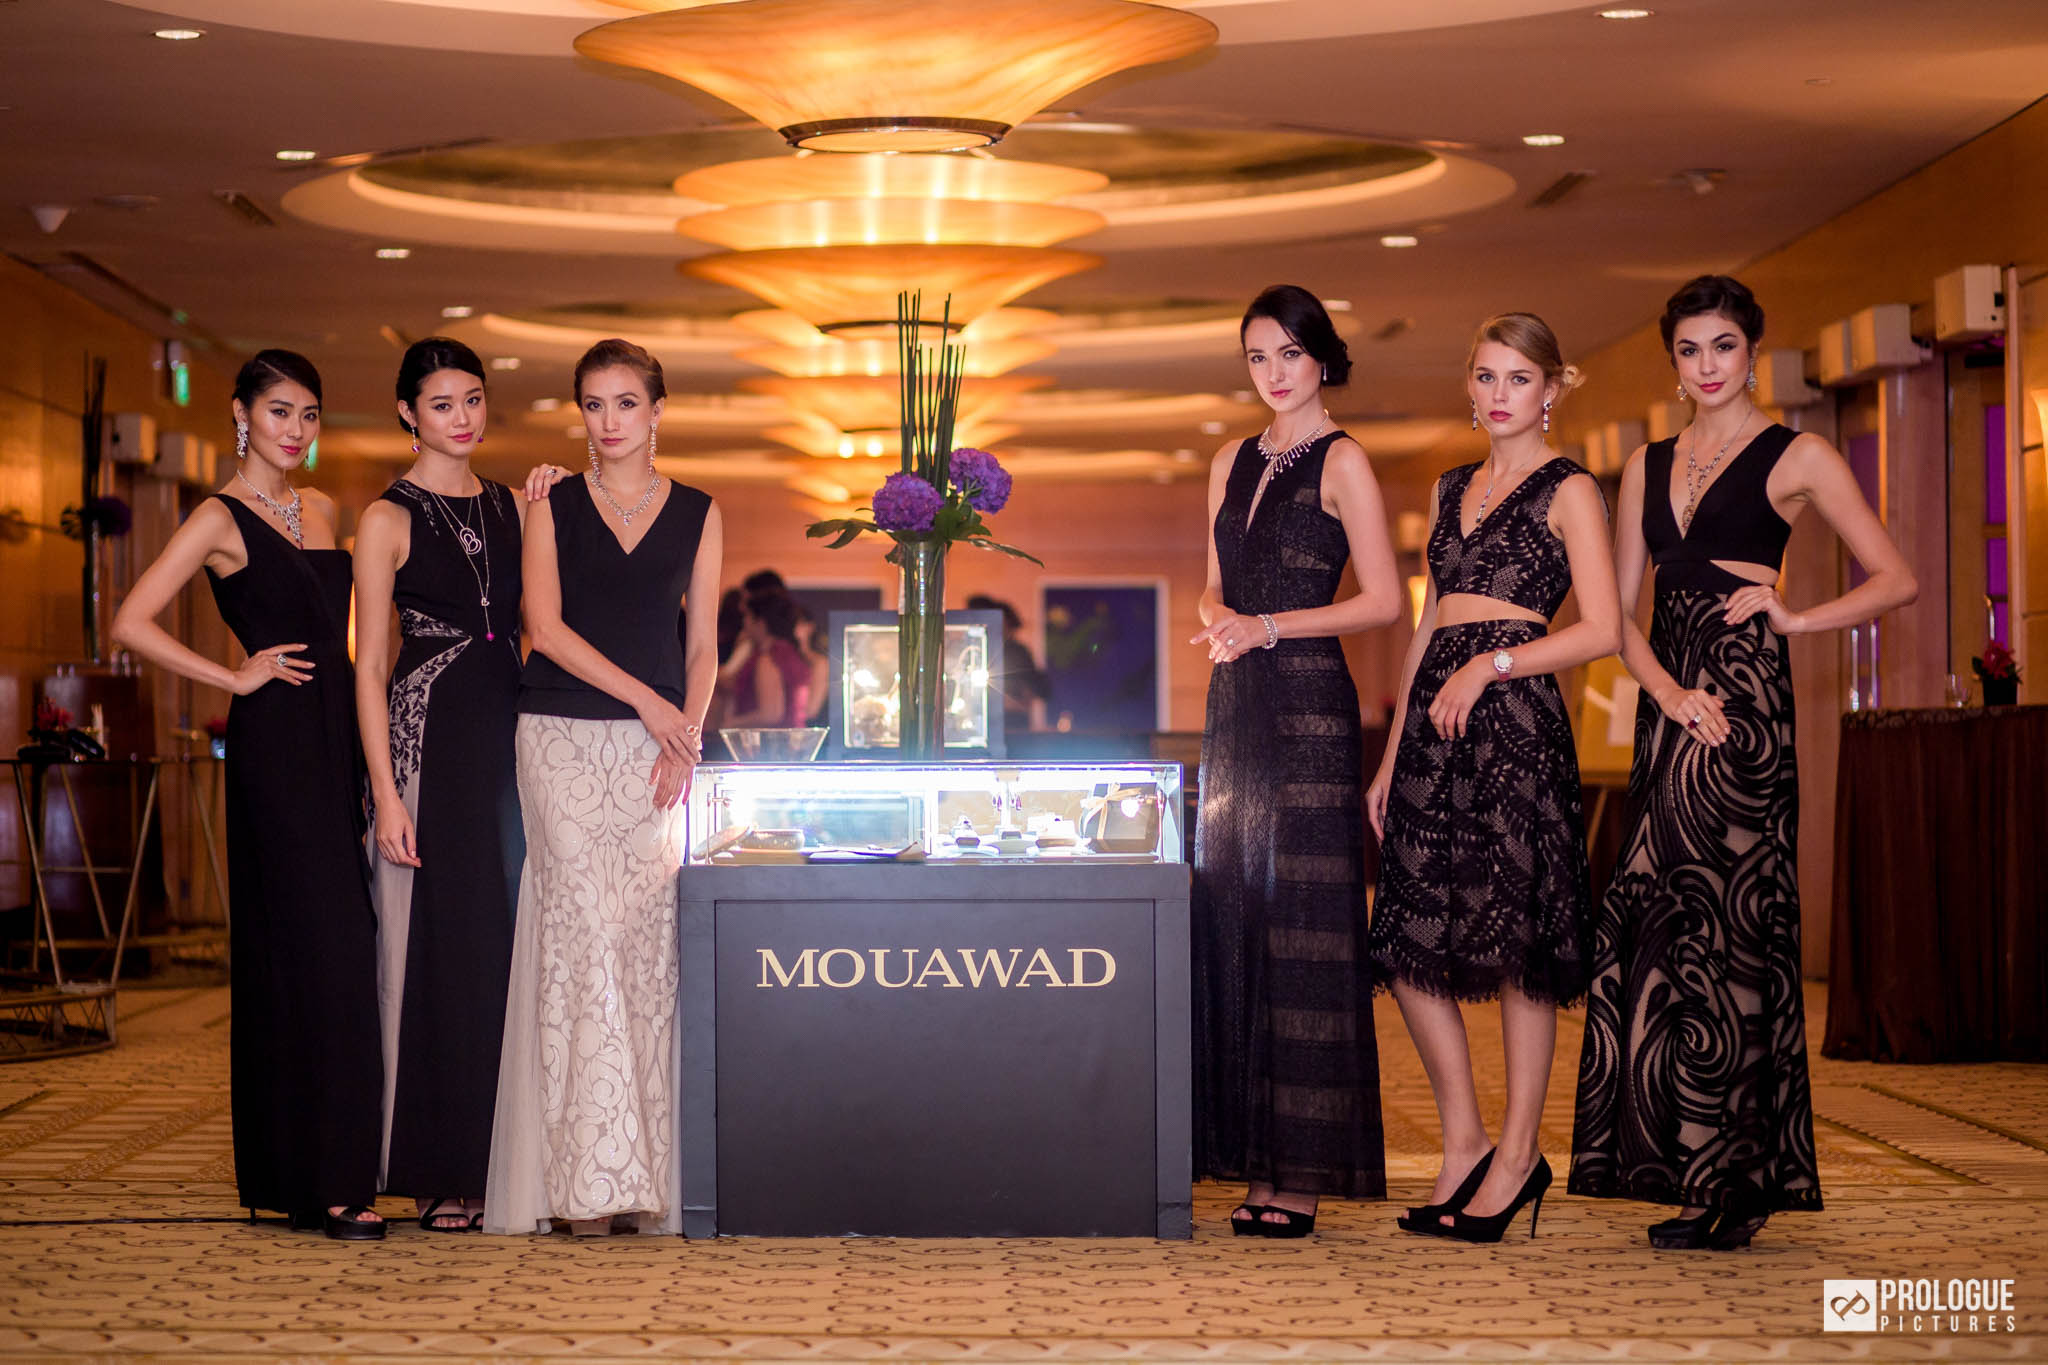 mouawad-125th-anniversary-event-photography-singapore-prologue-pictures-24